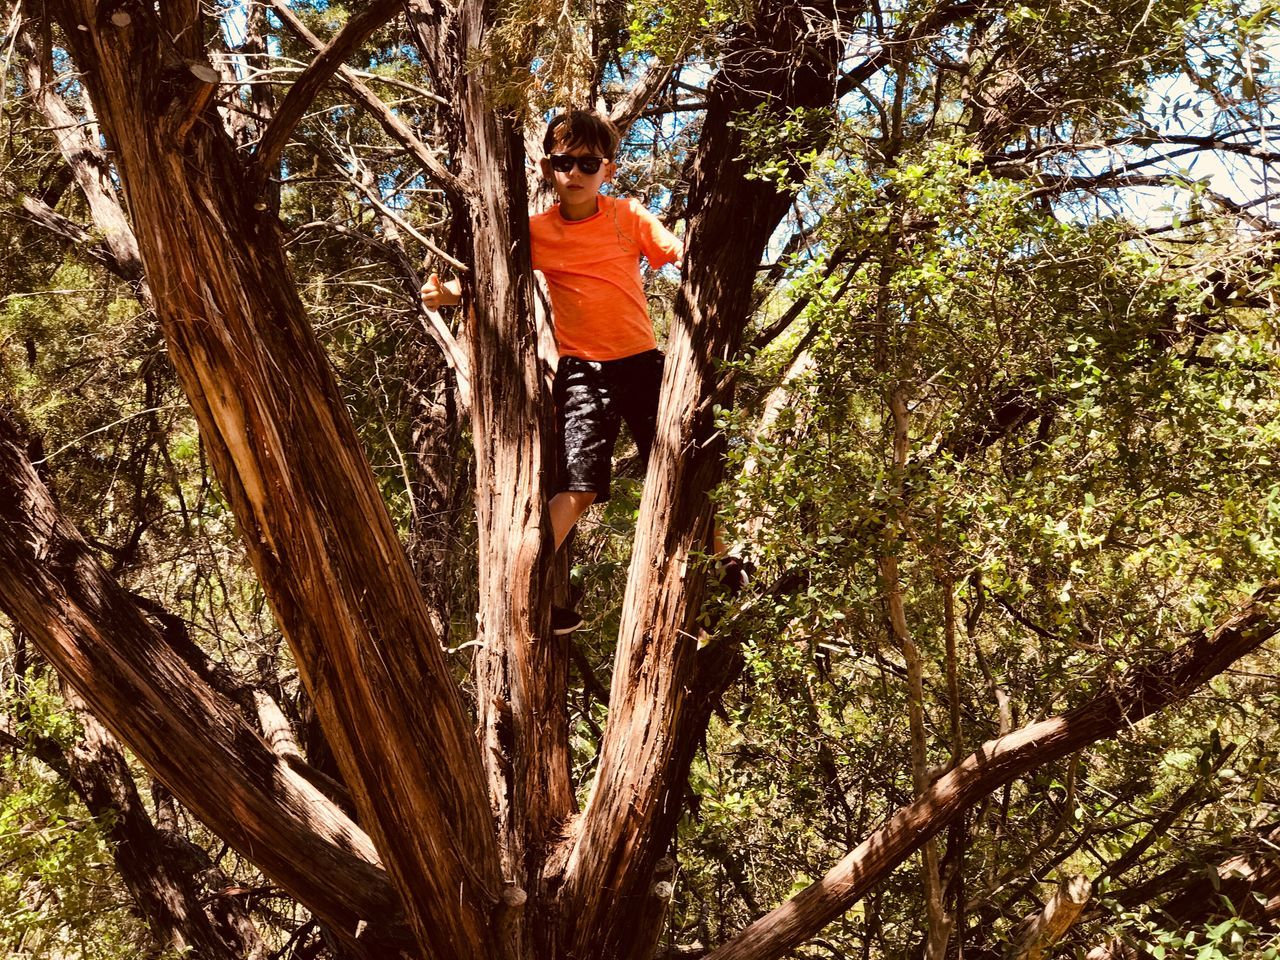 tree, one person, full length, adventure, leisure activity, climbing, tree trunk, low angle view, casual clothing, outdoors, nature, day, real people, branch, young men, growth, young adult, men, hanging, risk, lifestyles, one man only, rope swing, beauty in nature, adult, only men, adults only, people